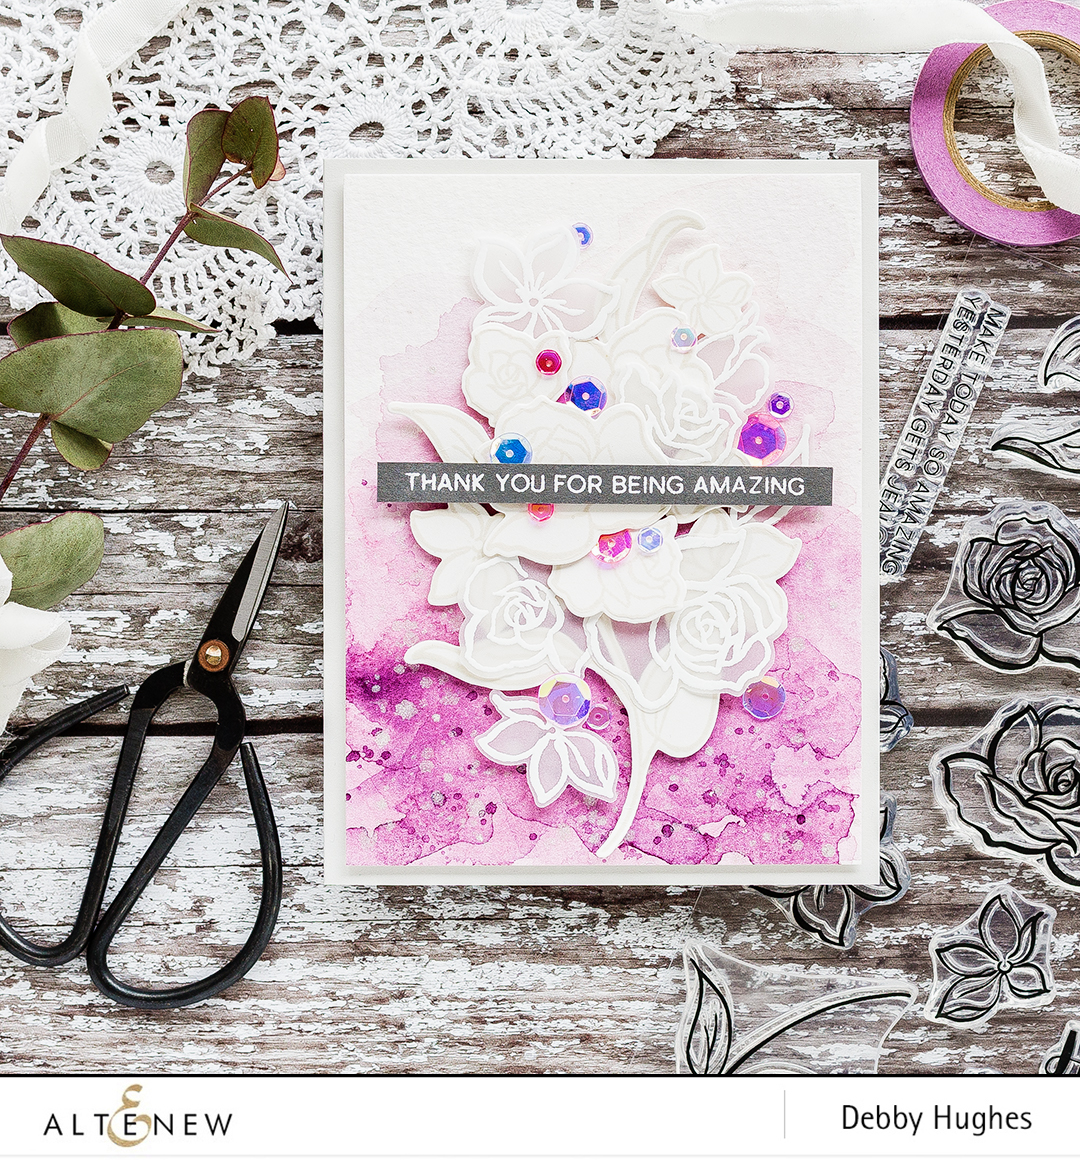 June 2017 Altenew Inspiration Challenge with Debby Hughes. Find out more by clicking the following link: http://altenewblog.com/2017/05/28/june-2017-inspiration-challenge-white-on-white-focal-point/